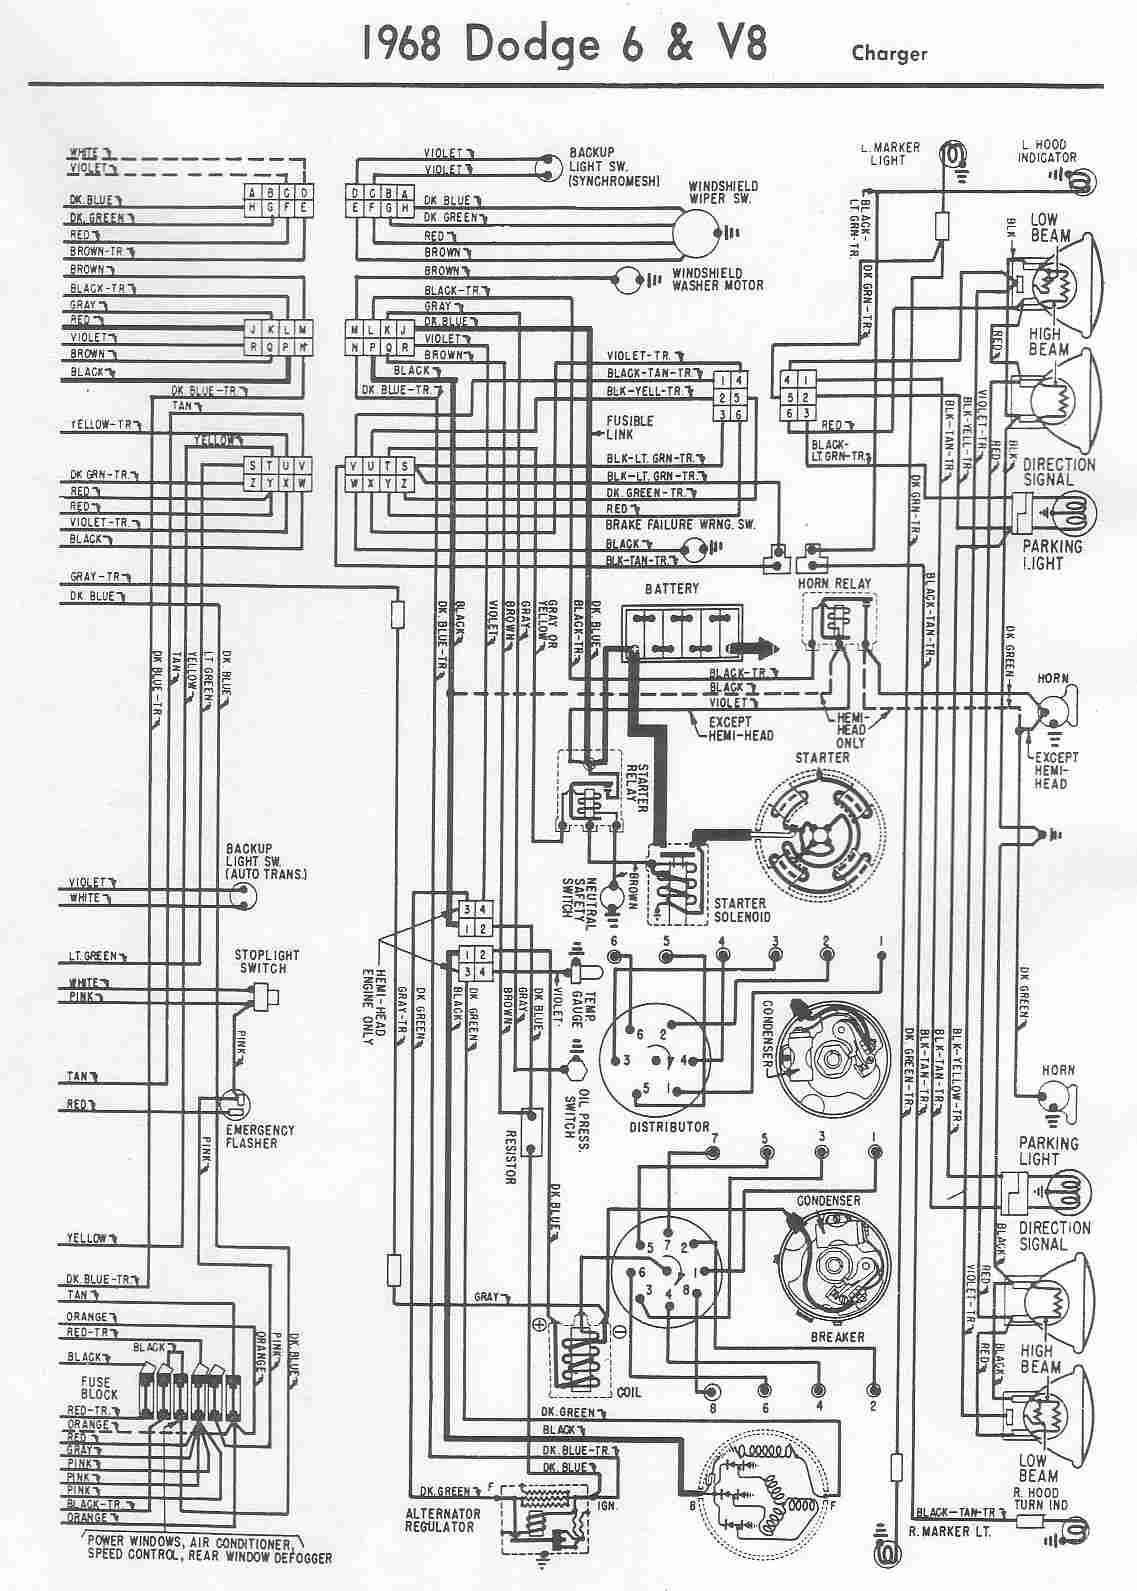 1968 Dodge Charger Wiring Diagram Find Wiring Diagram \u2022 Mustang Wiring  Diagrams 1968 Mustang Wiring Schematic